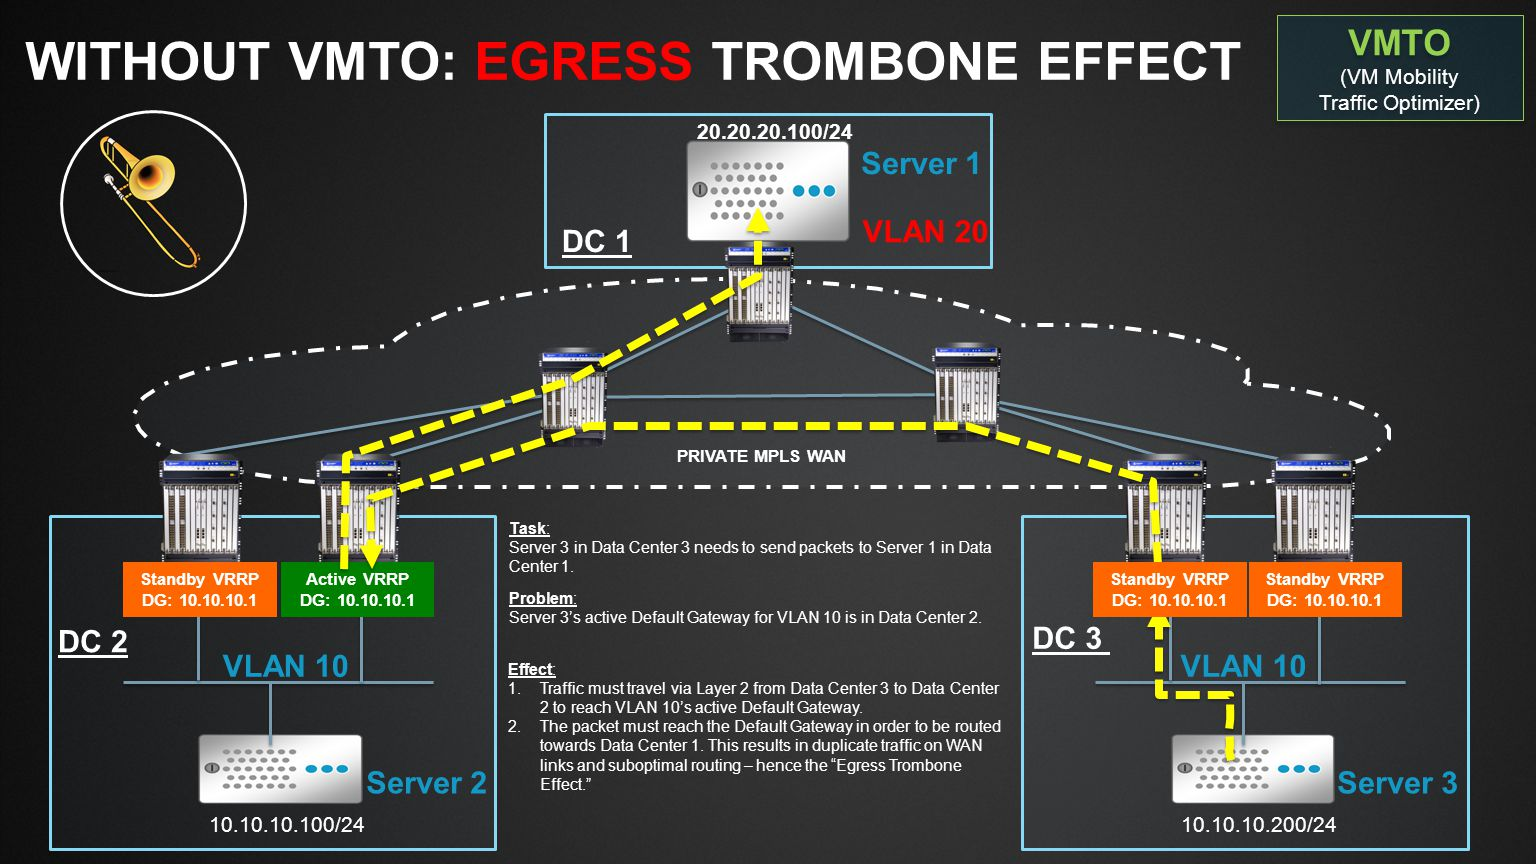 Without VMTO: Egress Trombone Effect